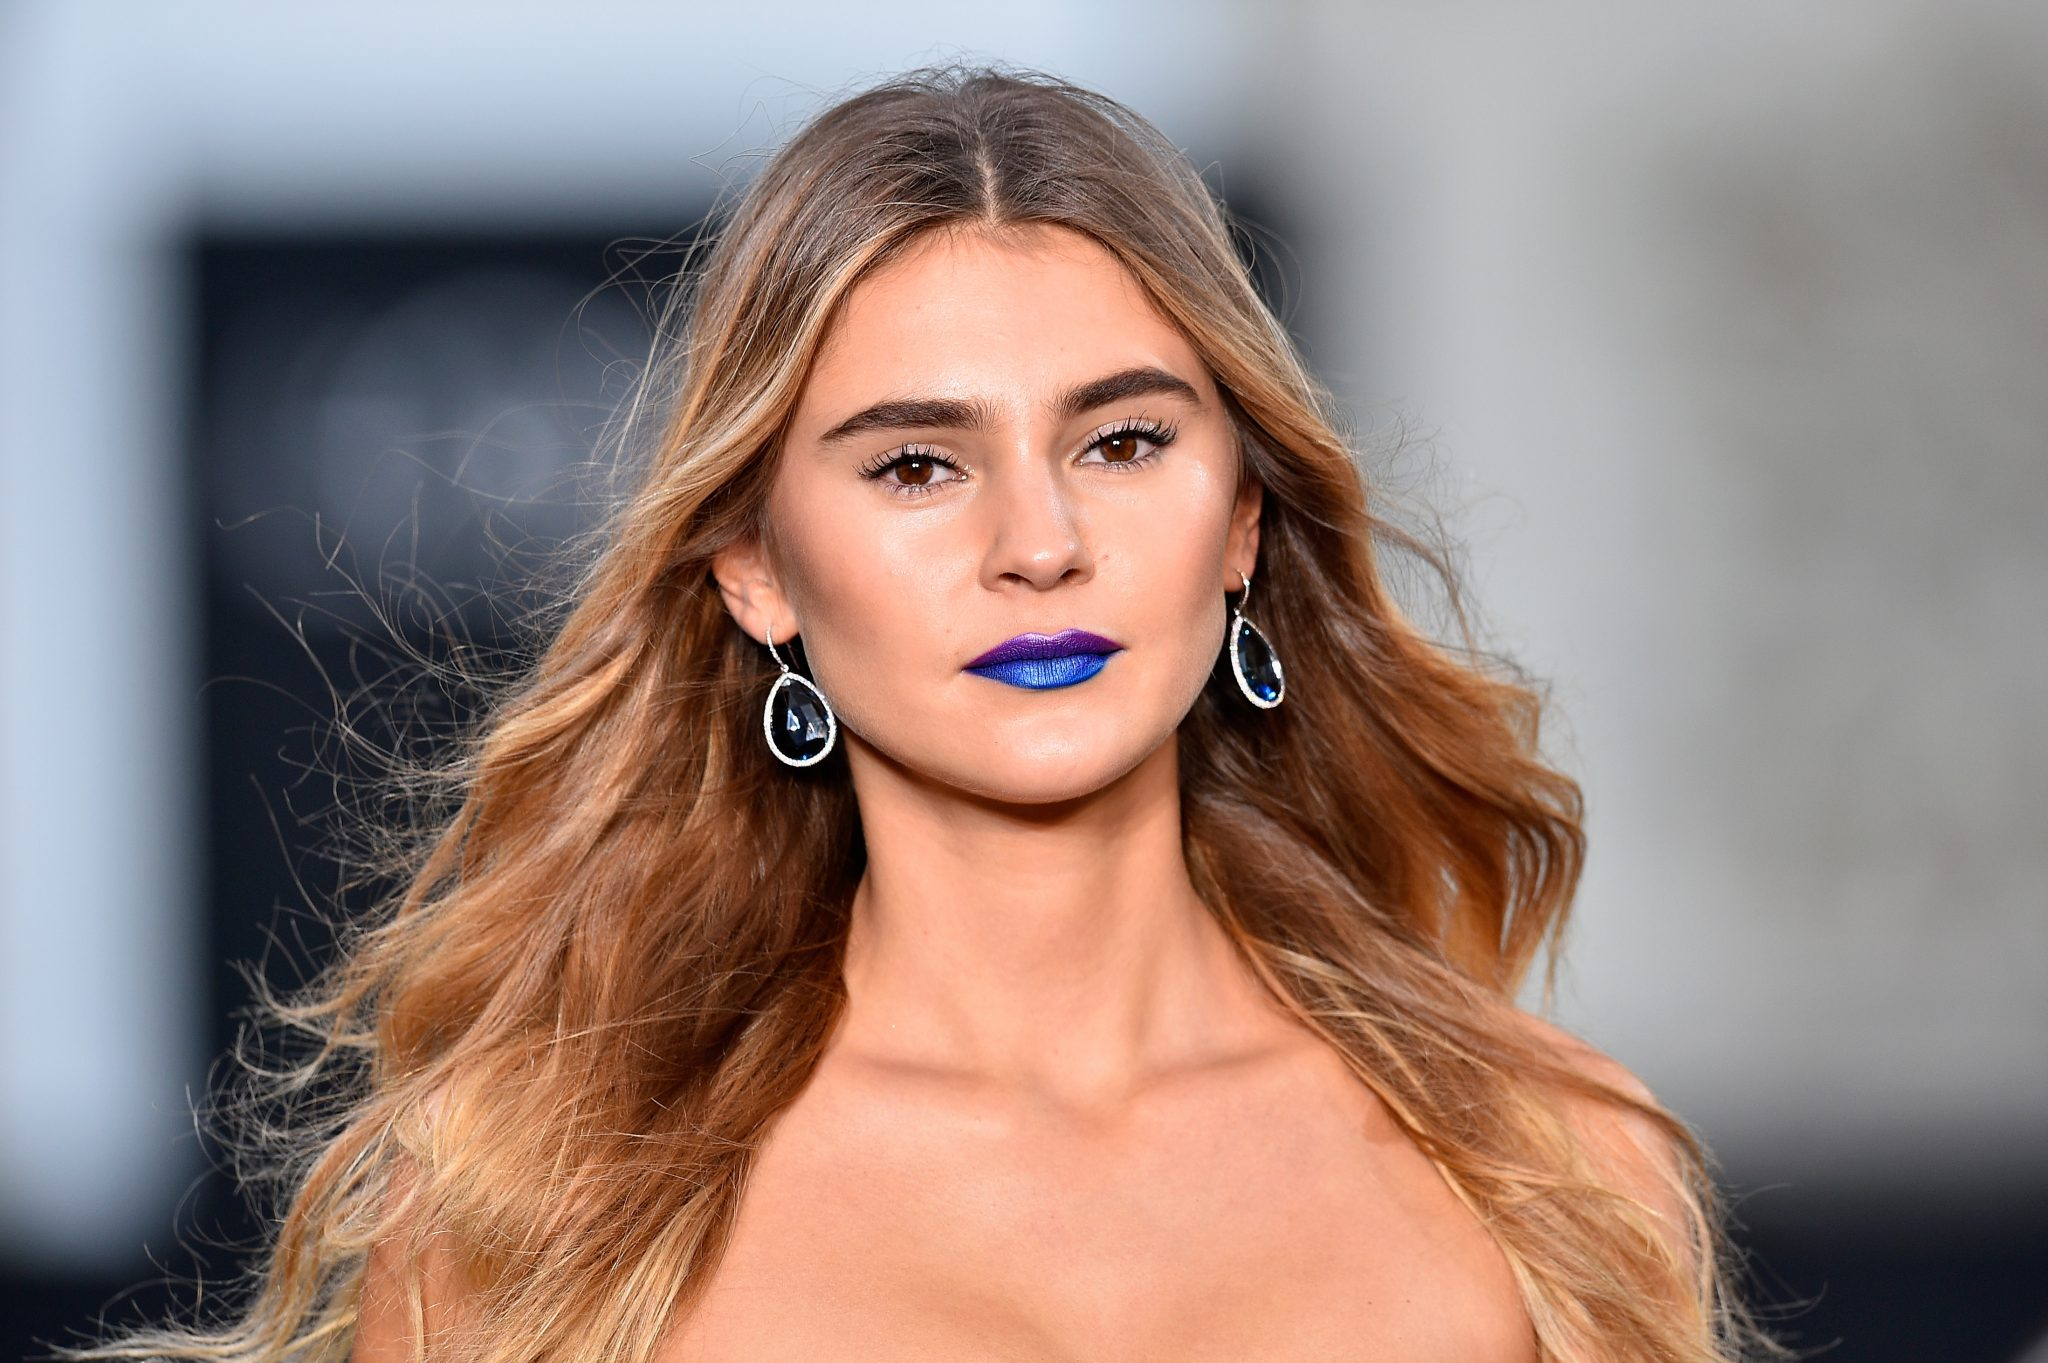 PARIS, FRANCE - OCTOBER 01: Stefanie Giesinger walks the runway during Le Defile L'Oreal Paris as part of Paris Fashion Week Womenswear Spring/Summer 2018 at Avenue Des Champs Elysees on October 1, 2017 in Paris, France. (Photo by Kristy Sparow/Getty Images for L'Oreal)